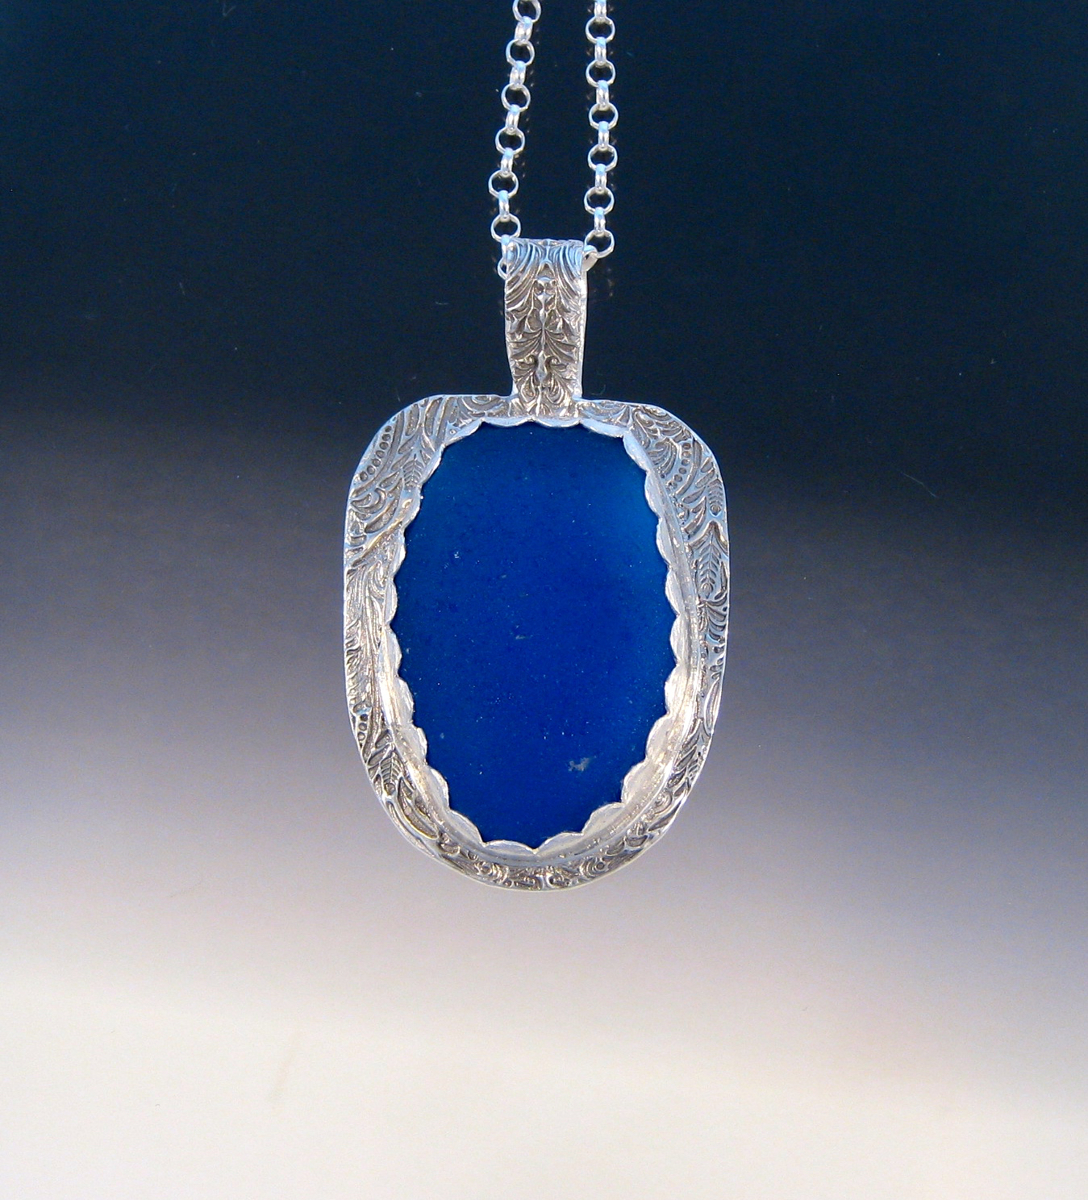 P5096 - The BIG Beauty Cobalt pendant (large view)